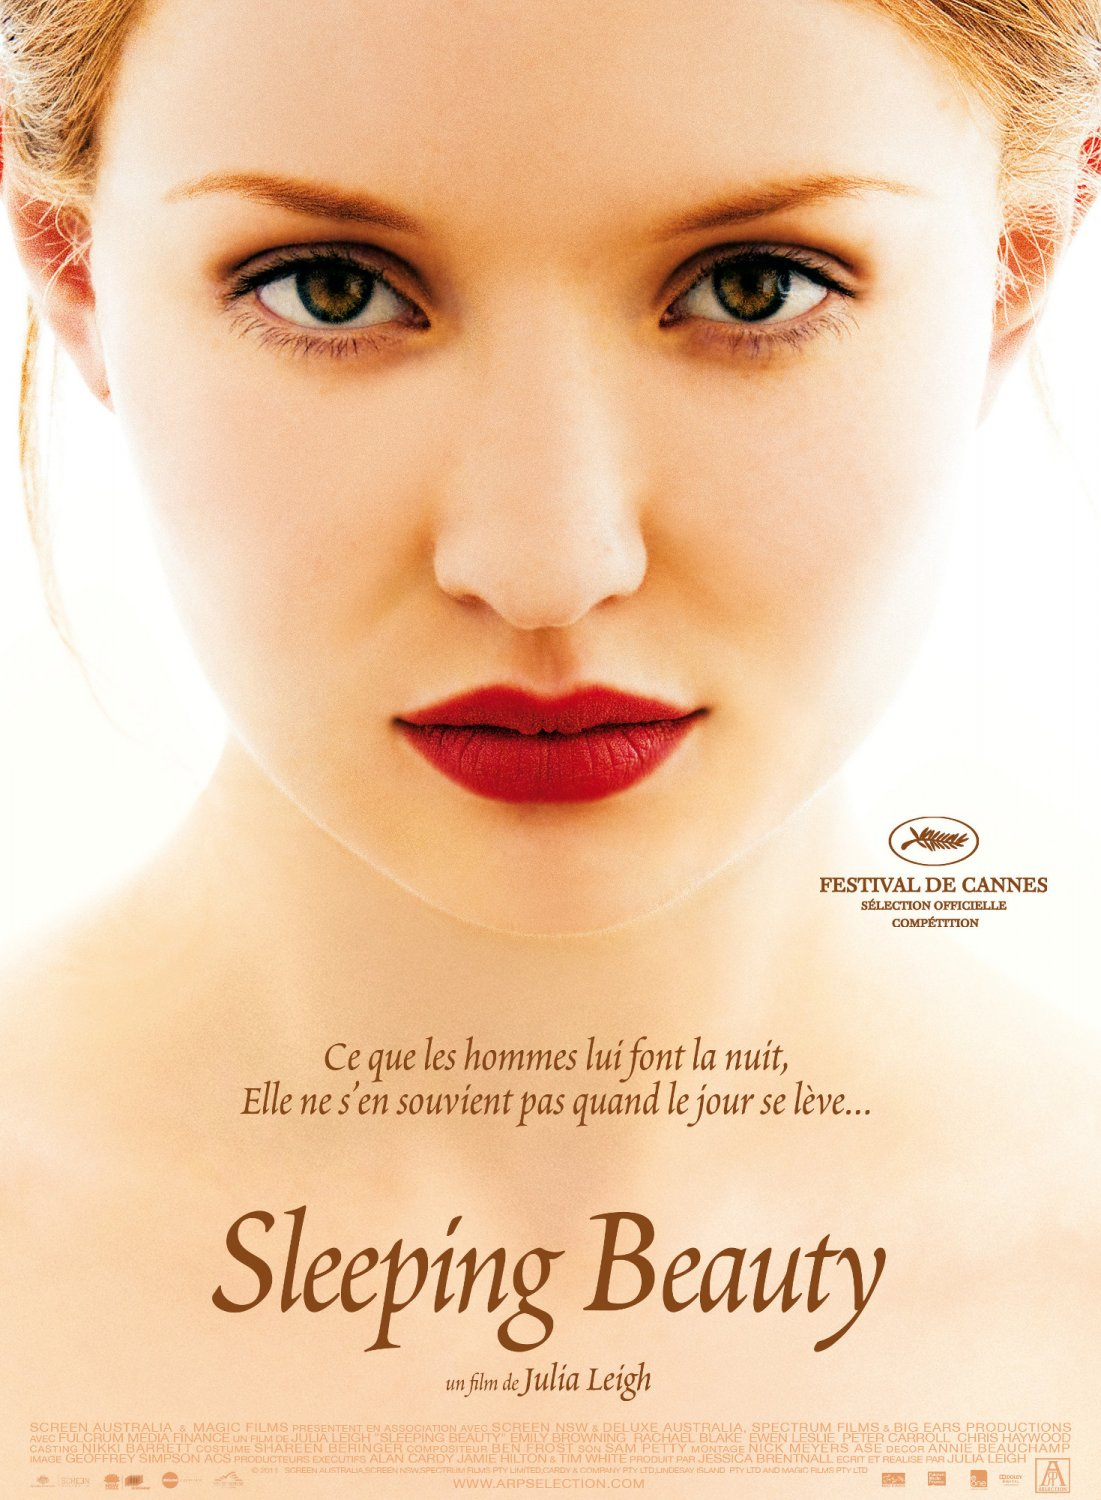 The Sleeping Beauty Movie Poster